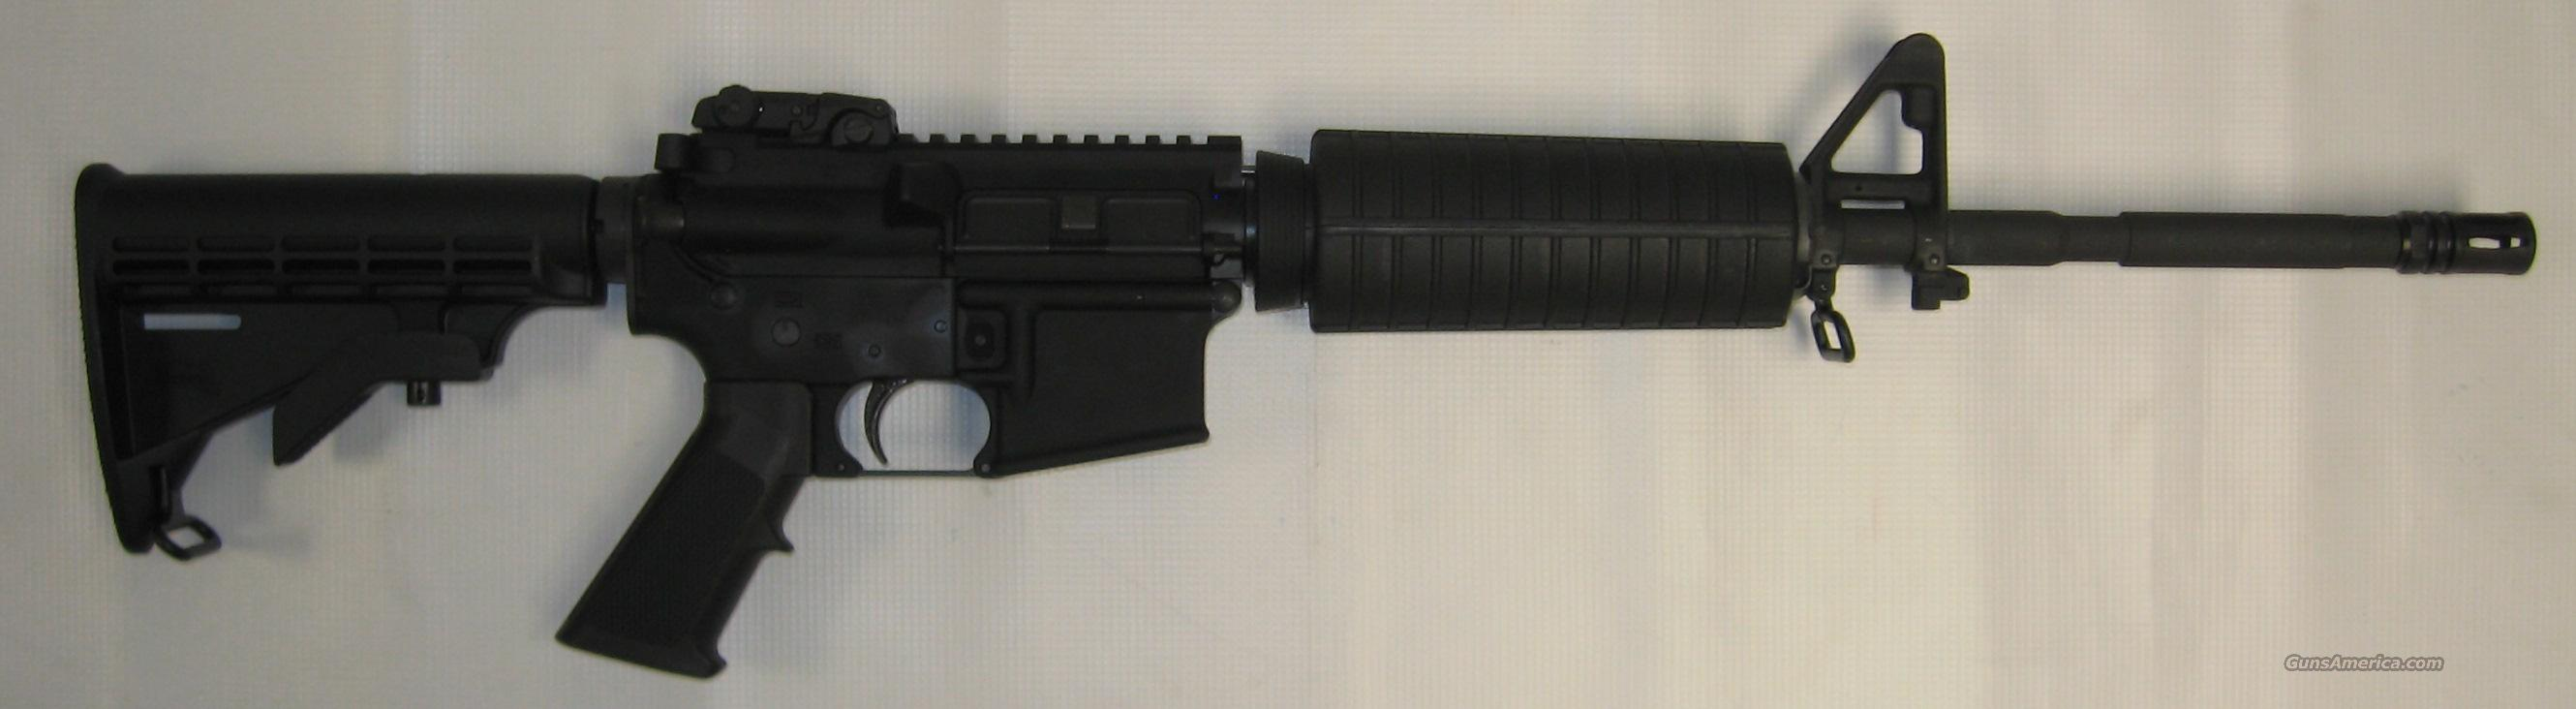 Palmetto State Armory PA-15 .223  Guns > Rifles > AR-15 Rifles - Small Manufacturers > Complete Rifle